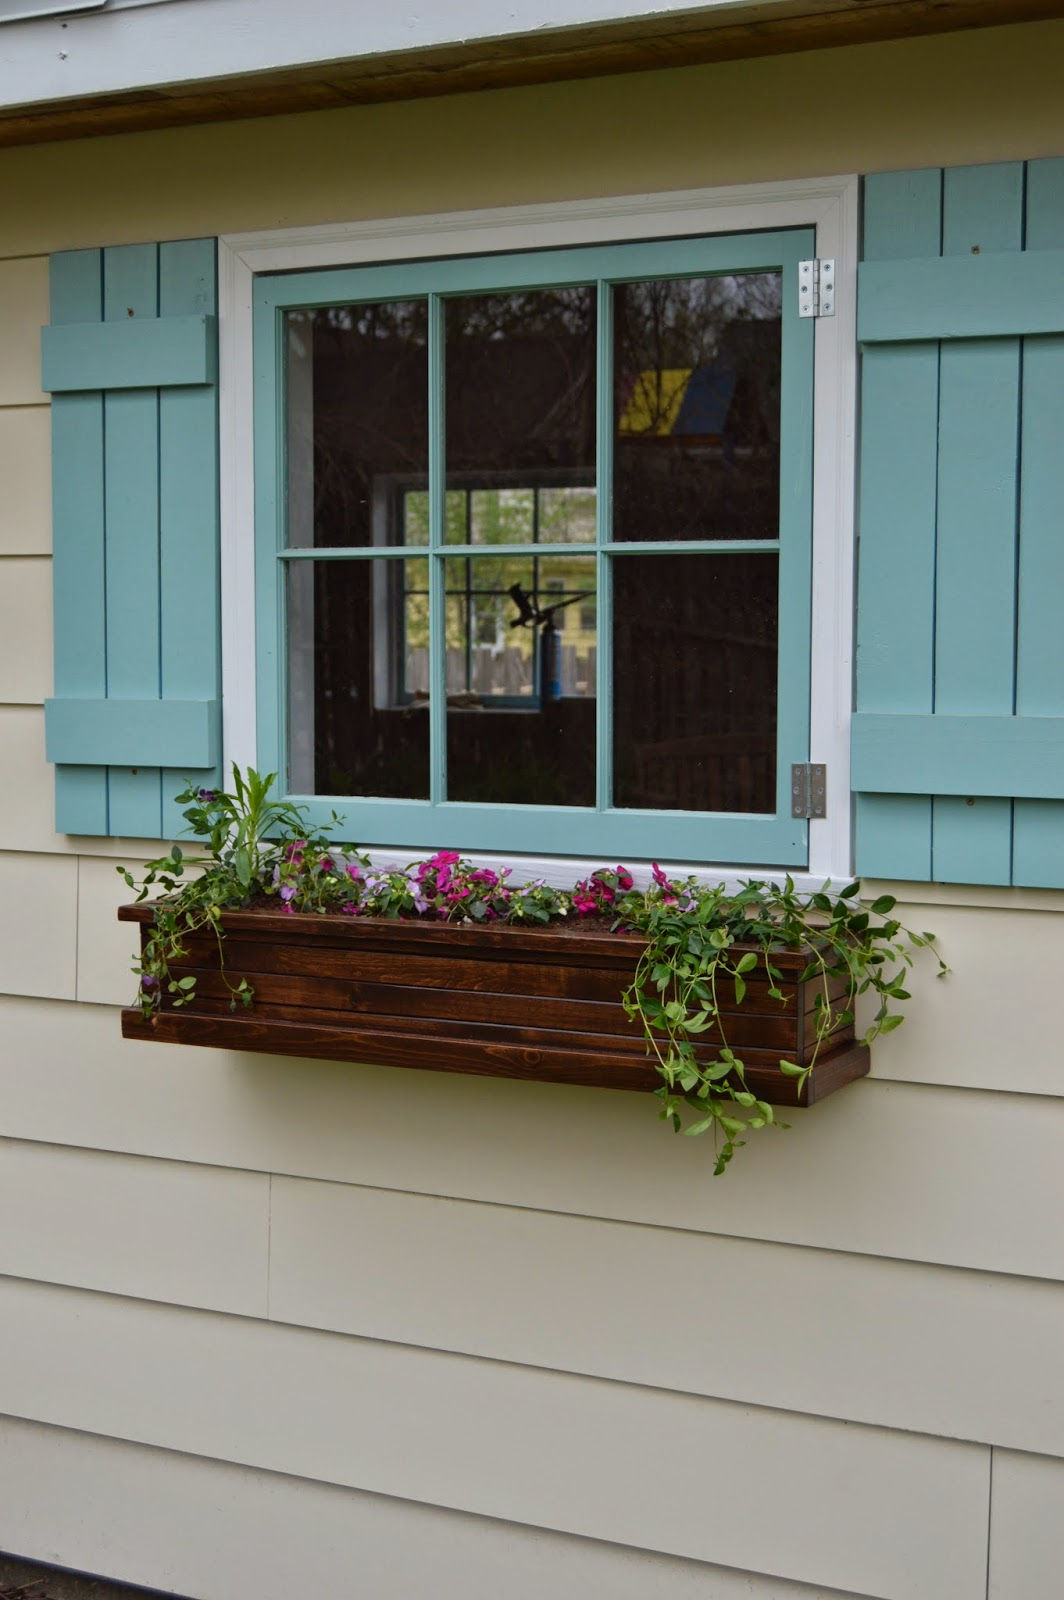 How to build flower boxes for window